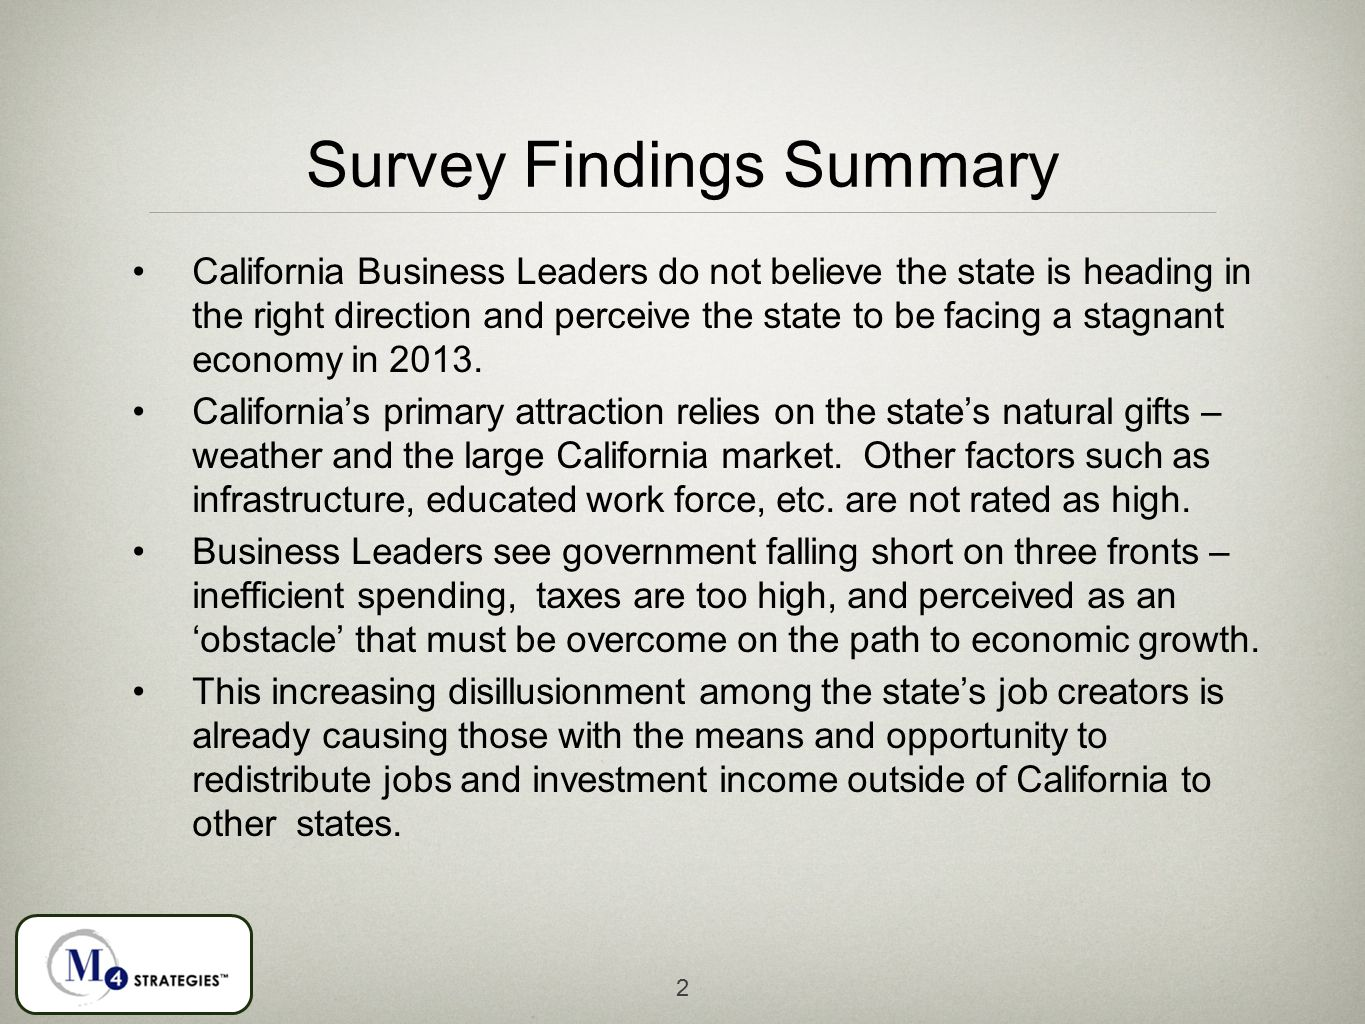 Survey Findings Summary California Business Leaders do not believe the state is heading in the right direction and perceive the state to be facing a stagnant economy in 2013.